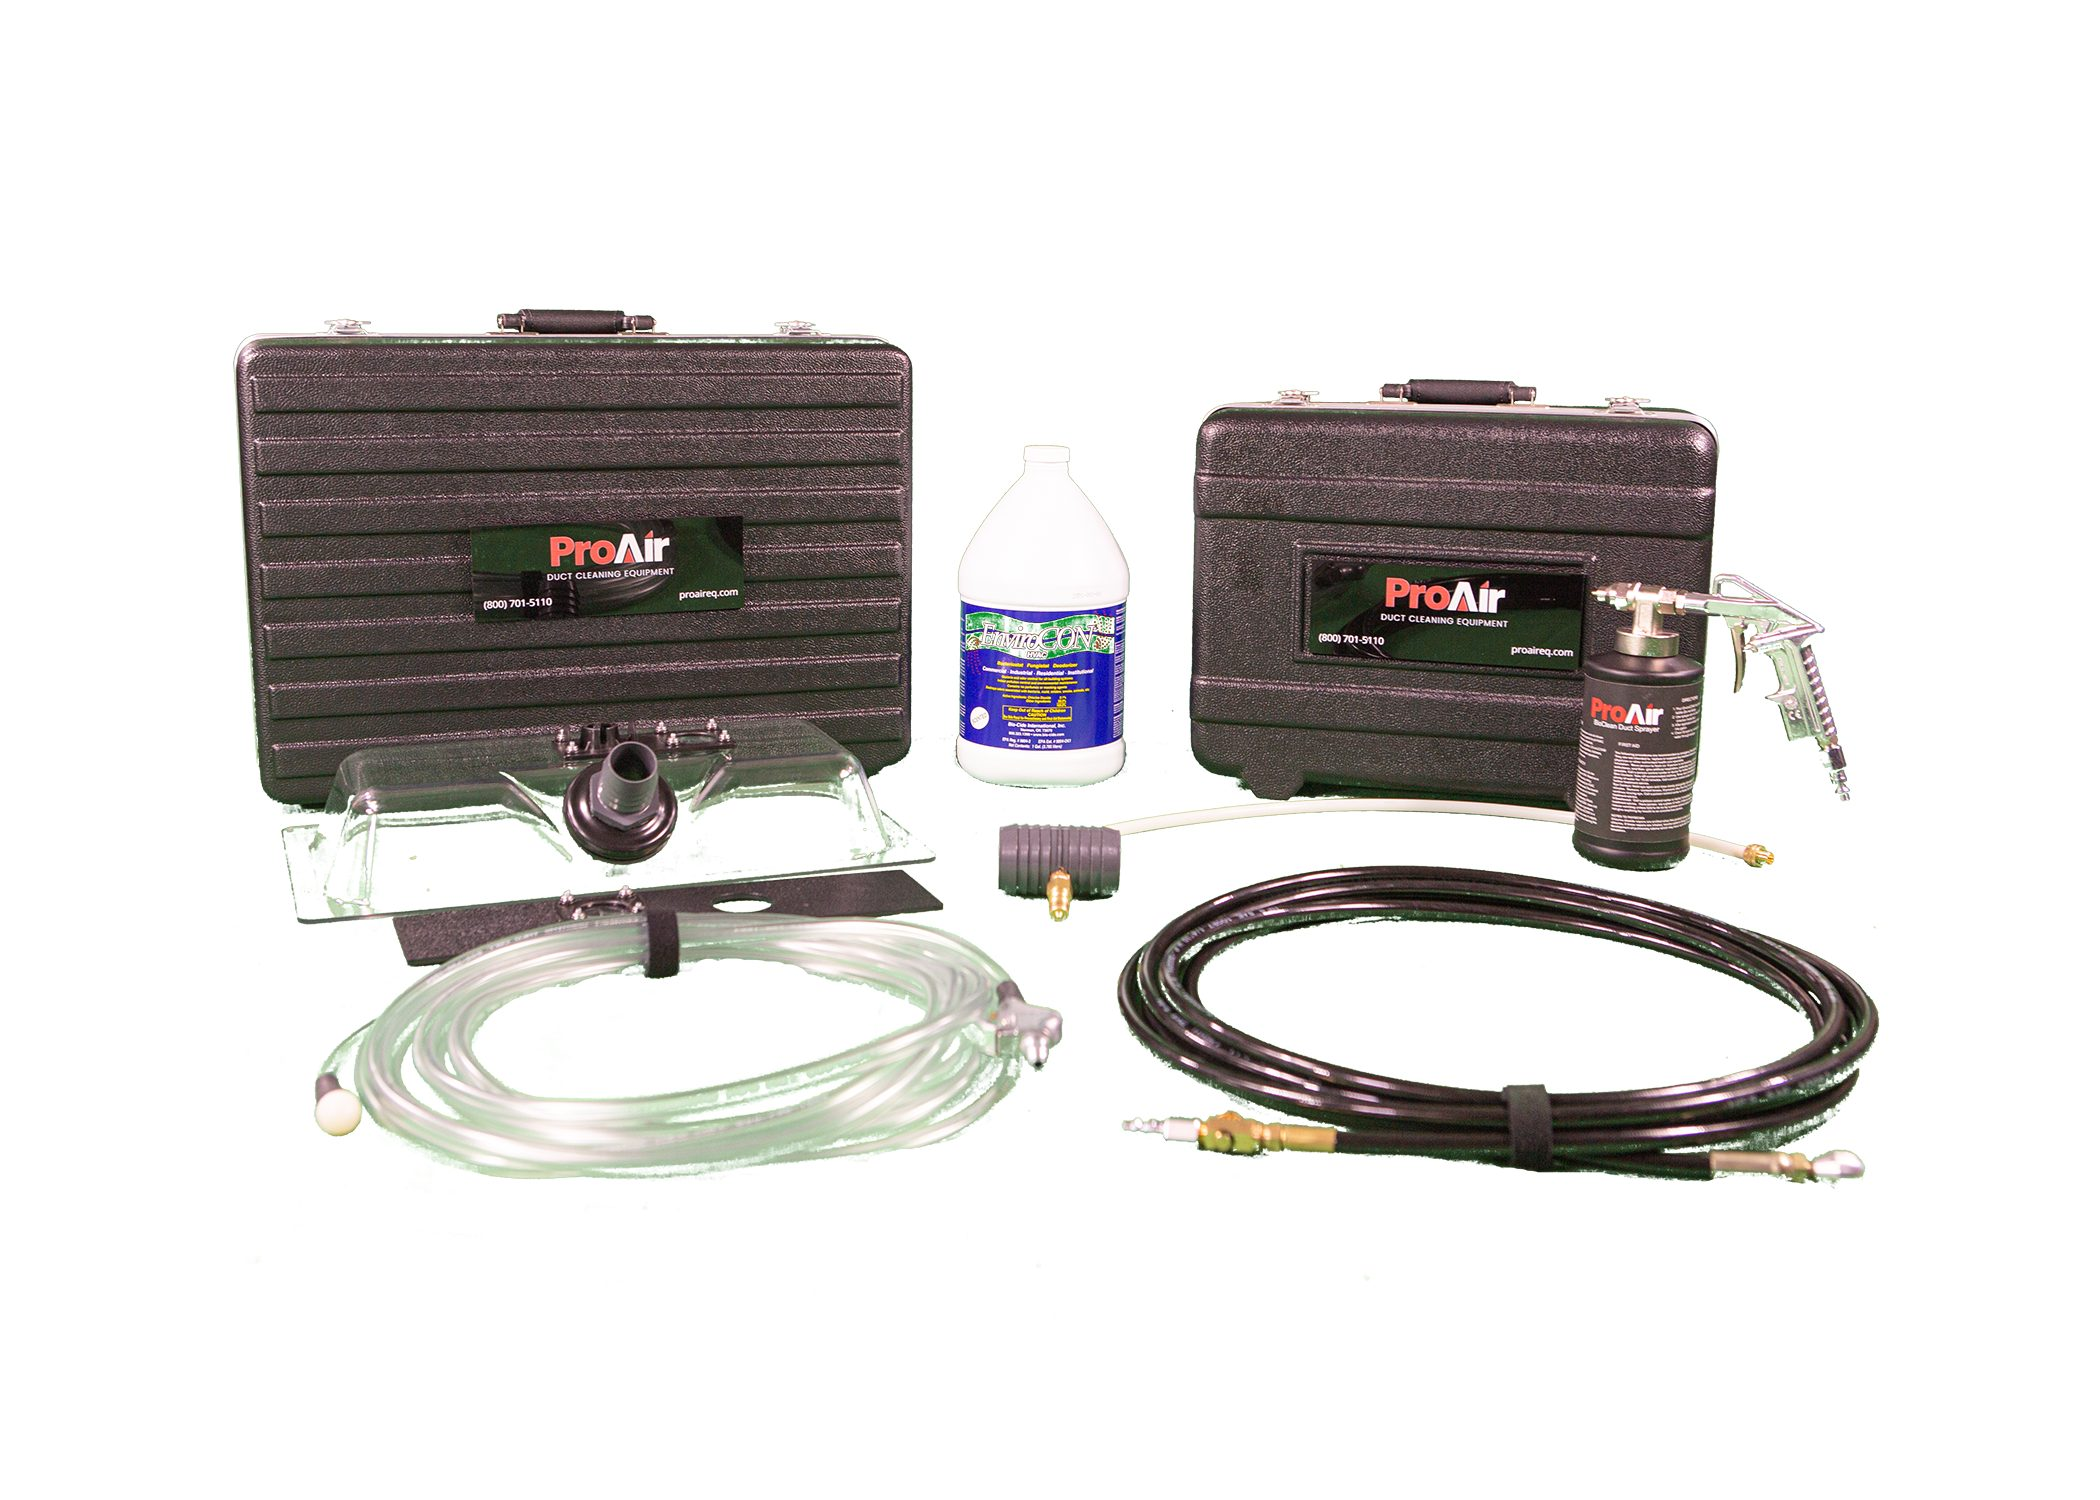 NEW PORTABLE AIR DUCT CLEANING SYSTEM THAT COMES WITH A DUAL MOTOR